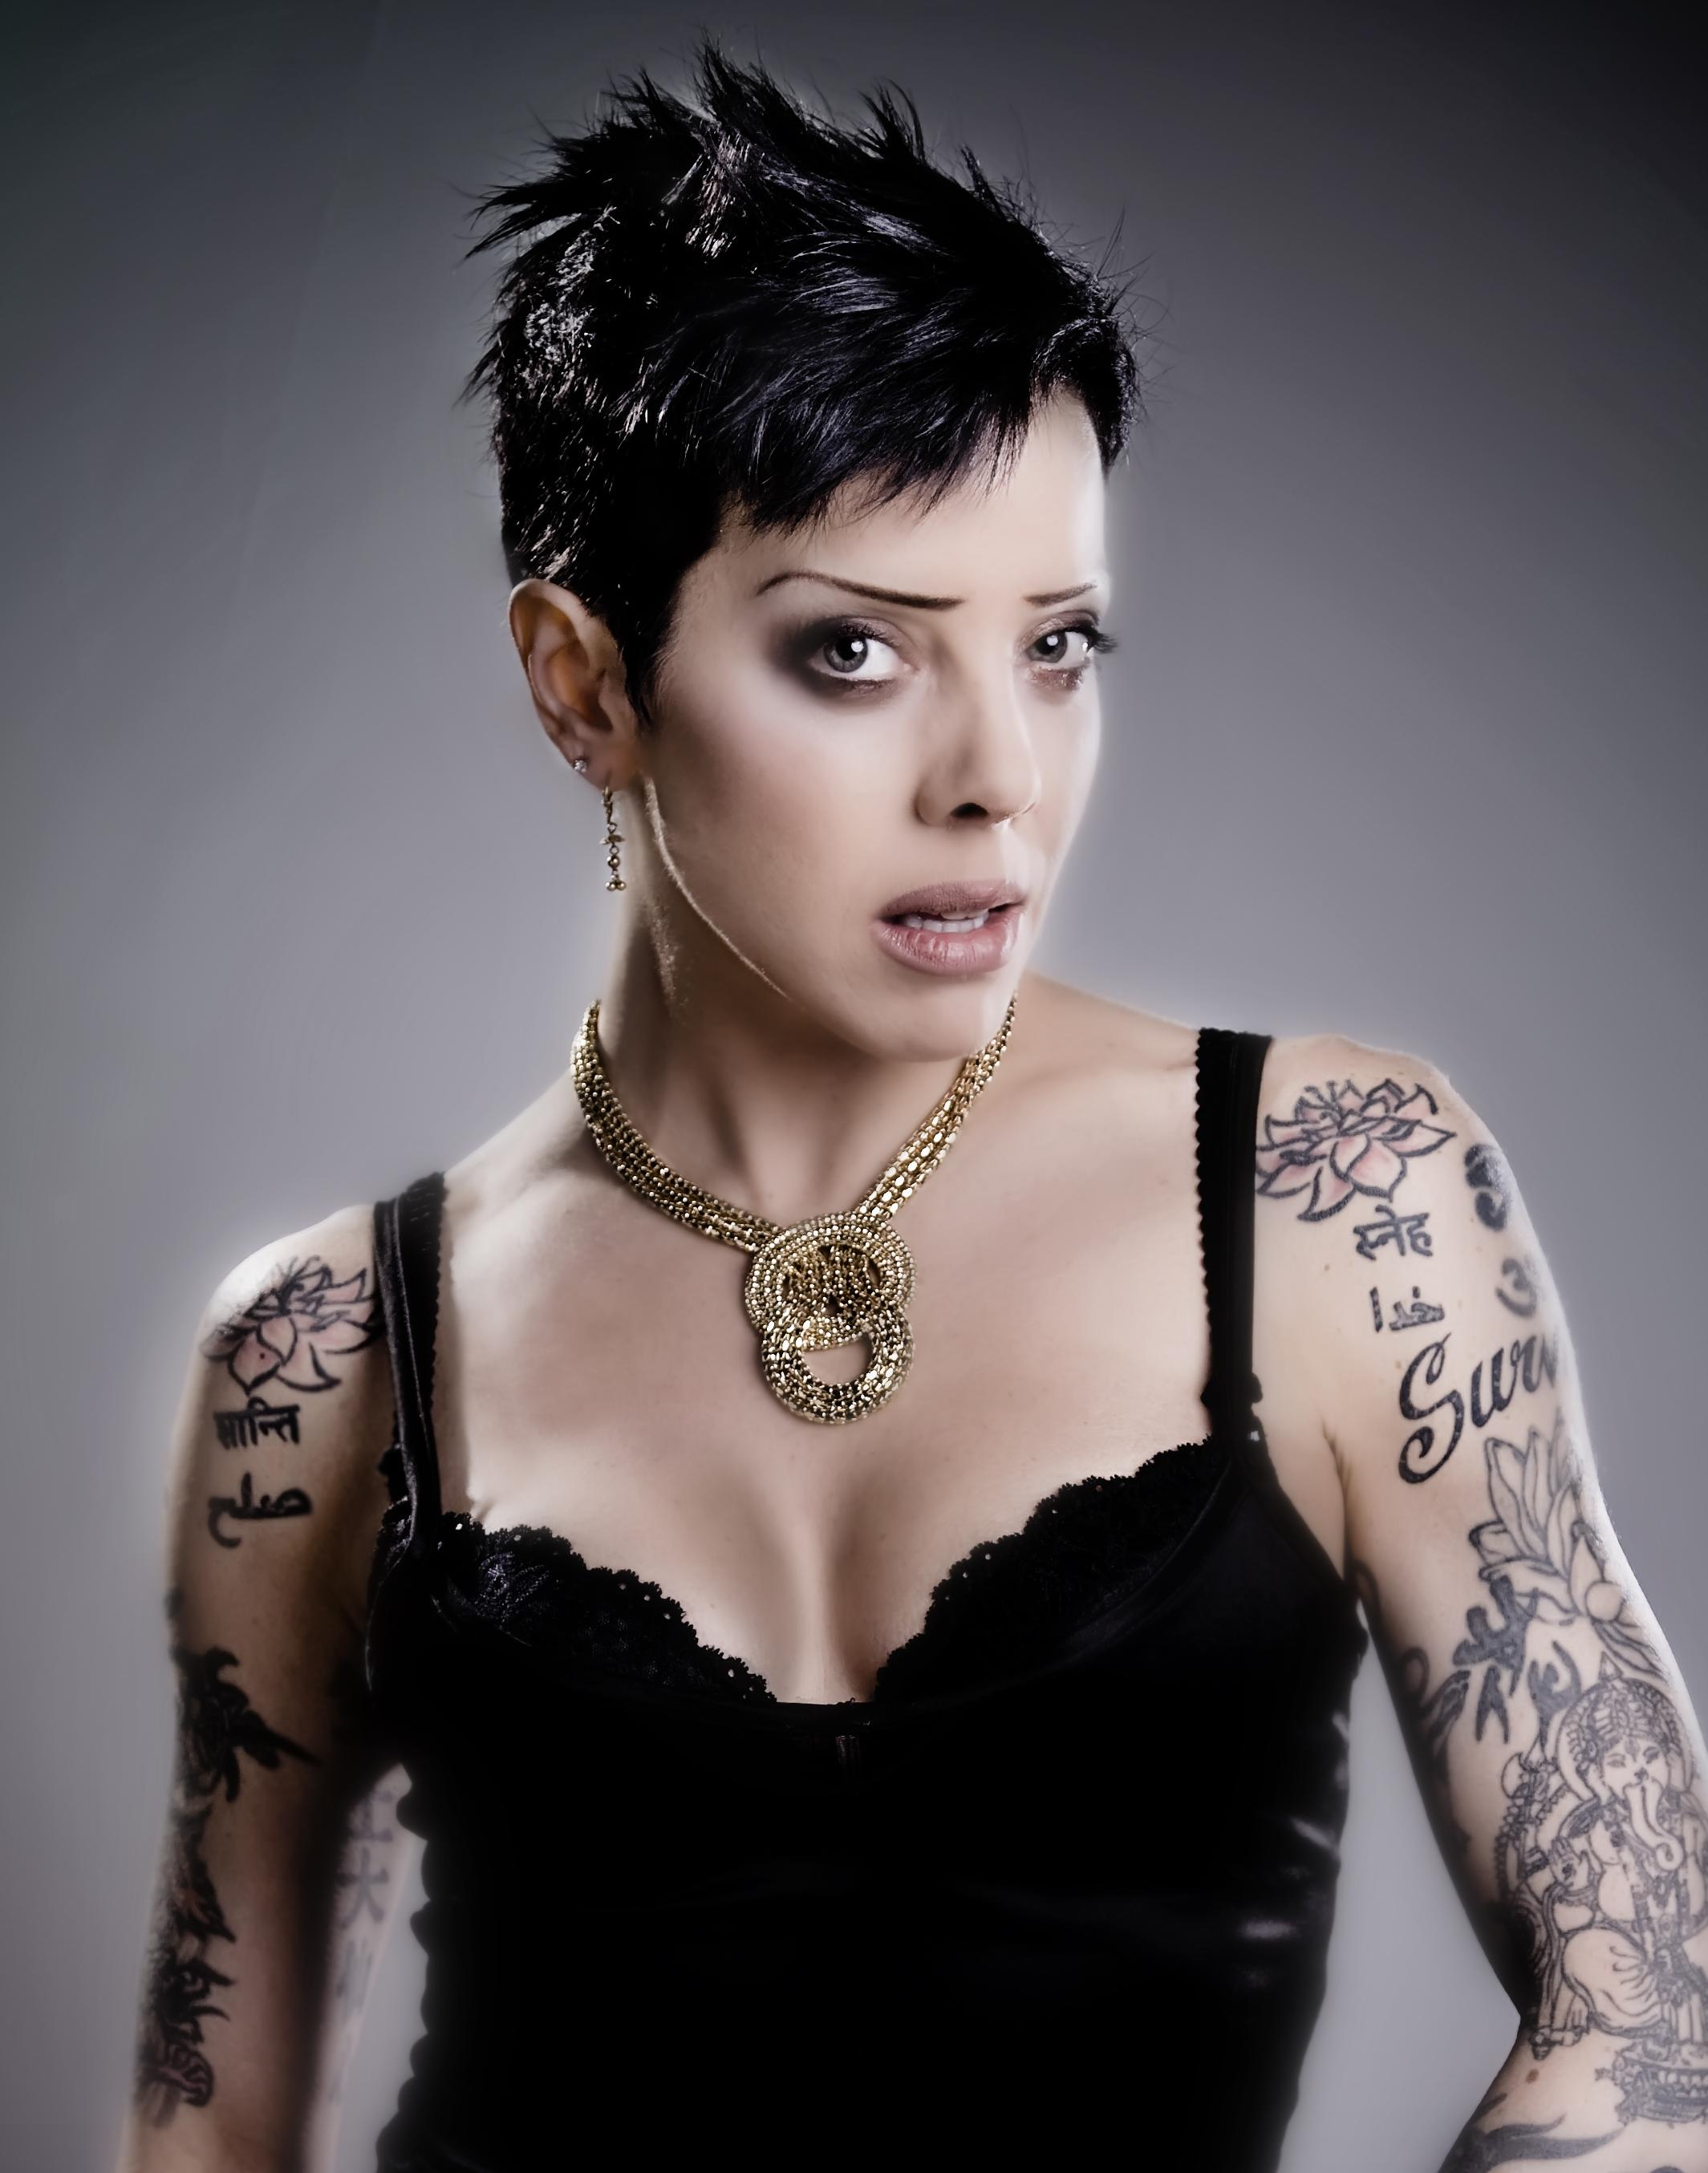 bif naked height